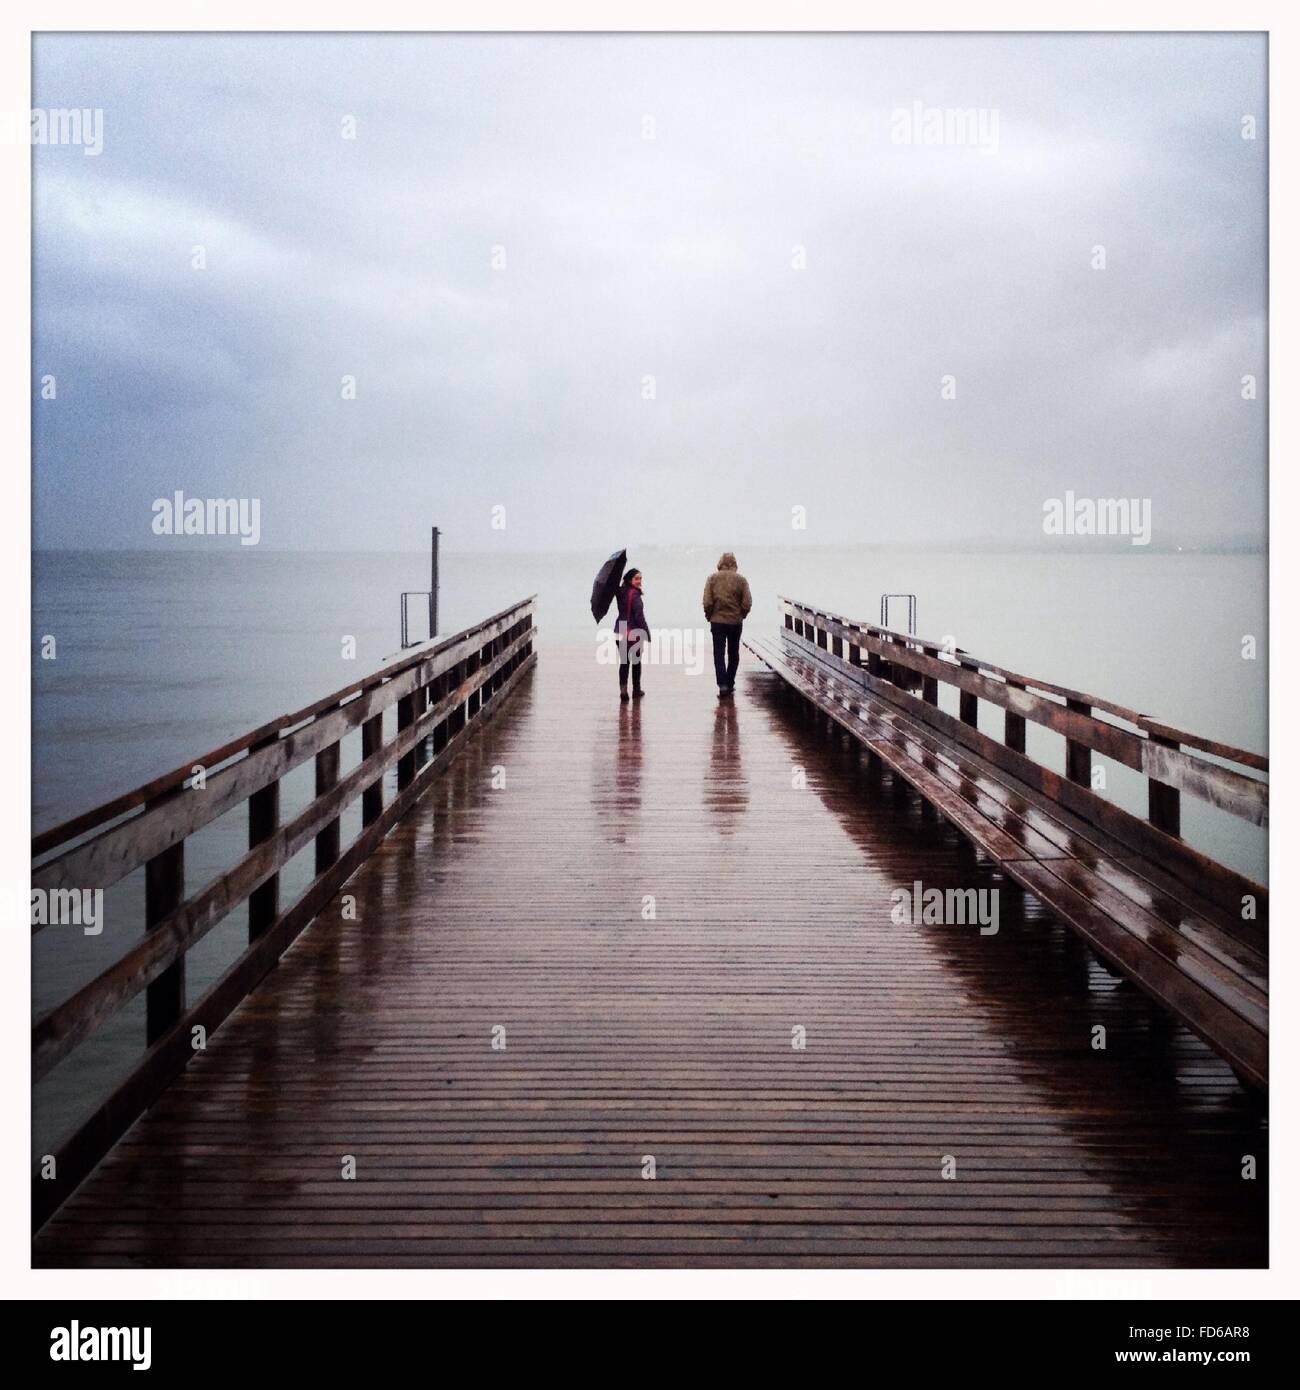 Couple Walking At A Pier - Stock Image